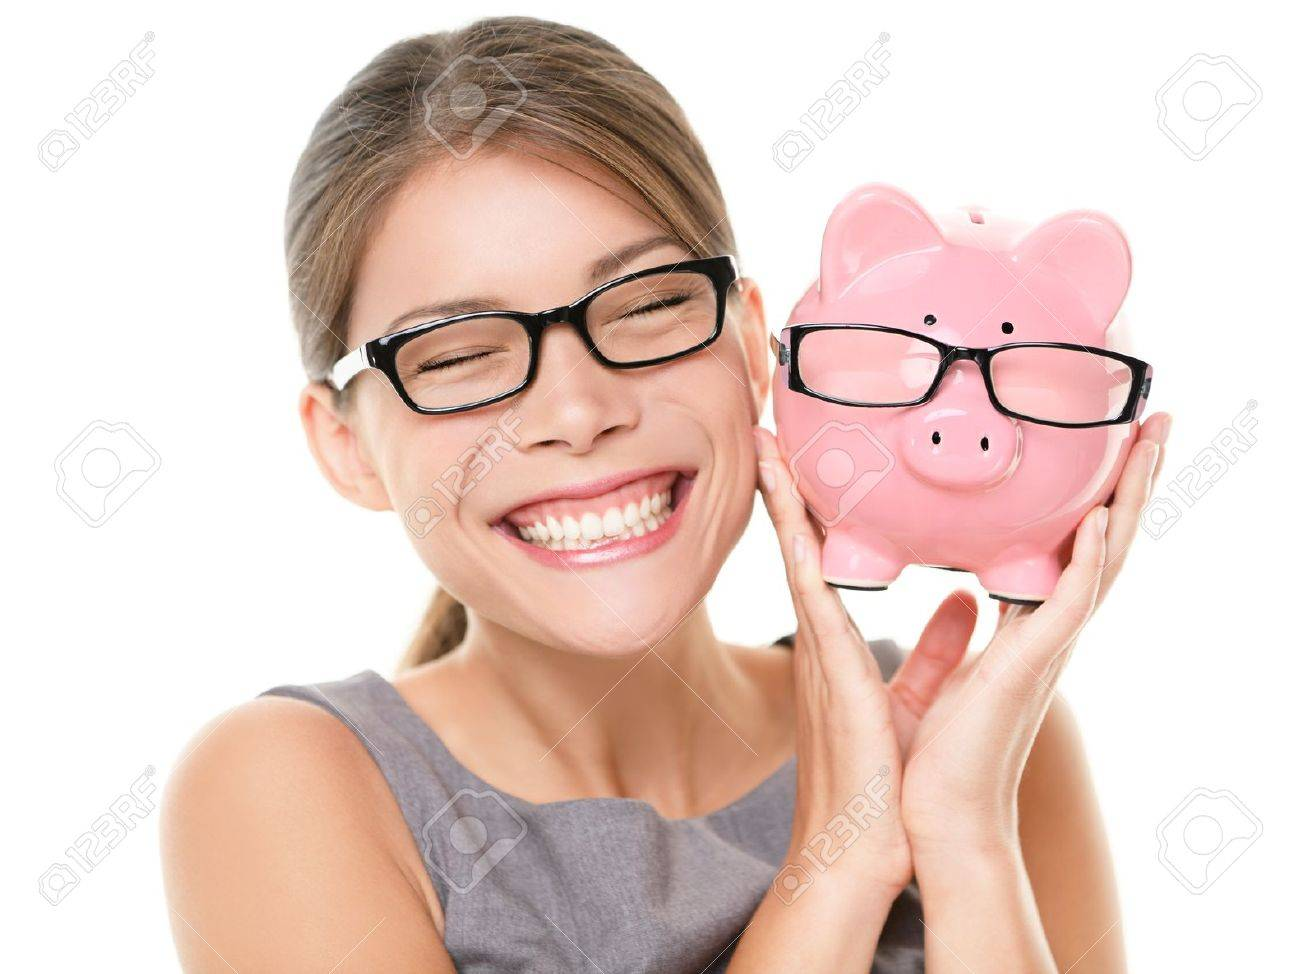 Glasses eyewear savings piggybank  Woman happy excited over saving money buying glasses  Young beautiful multiracial Caucasian   Chinese Asian woman isolated on white background Stock Photo - 13524223